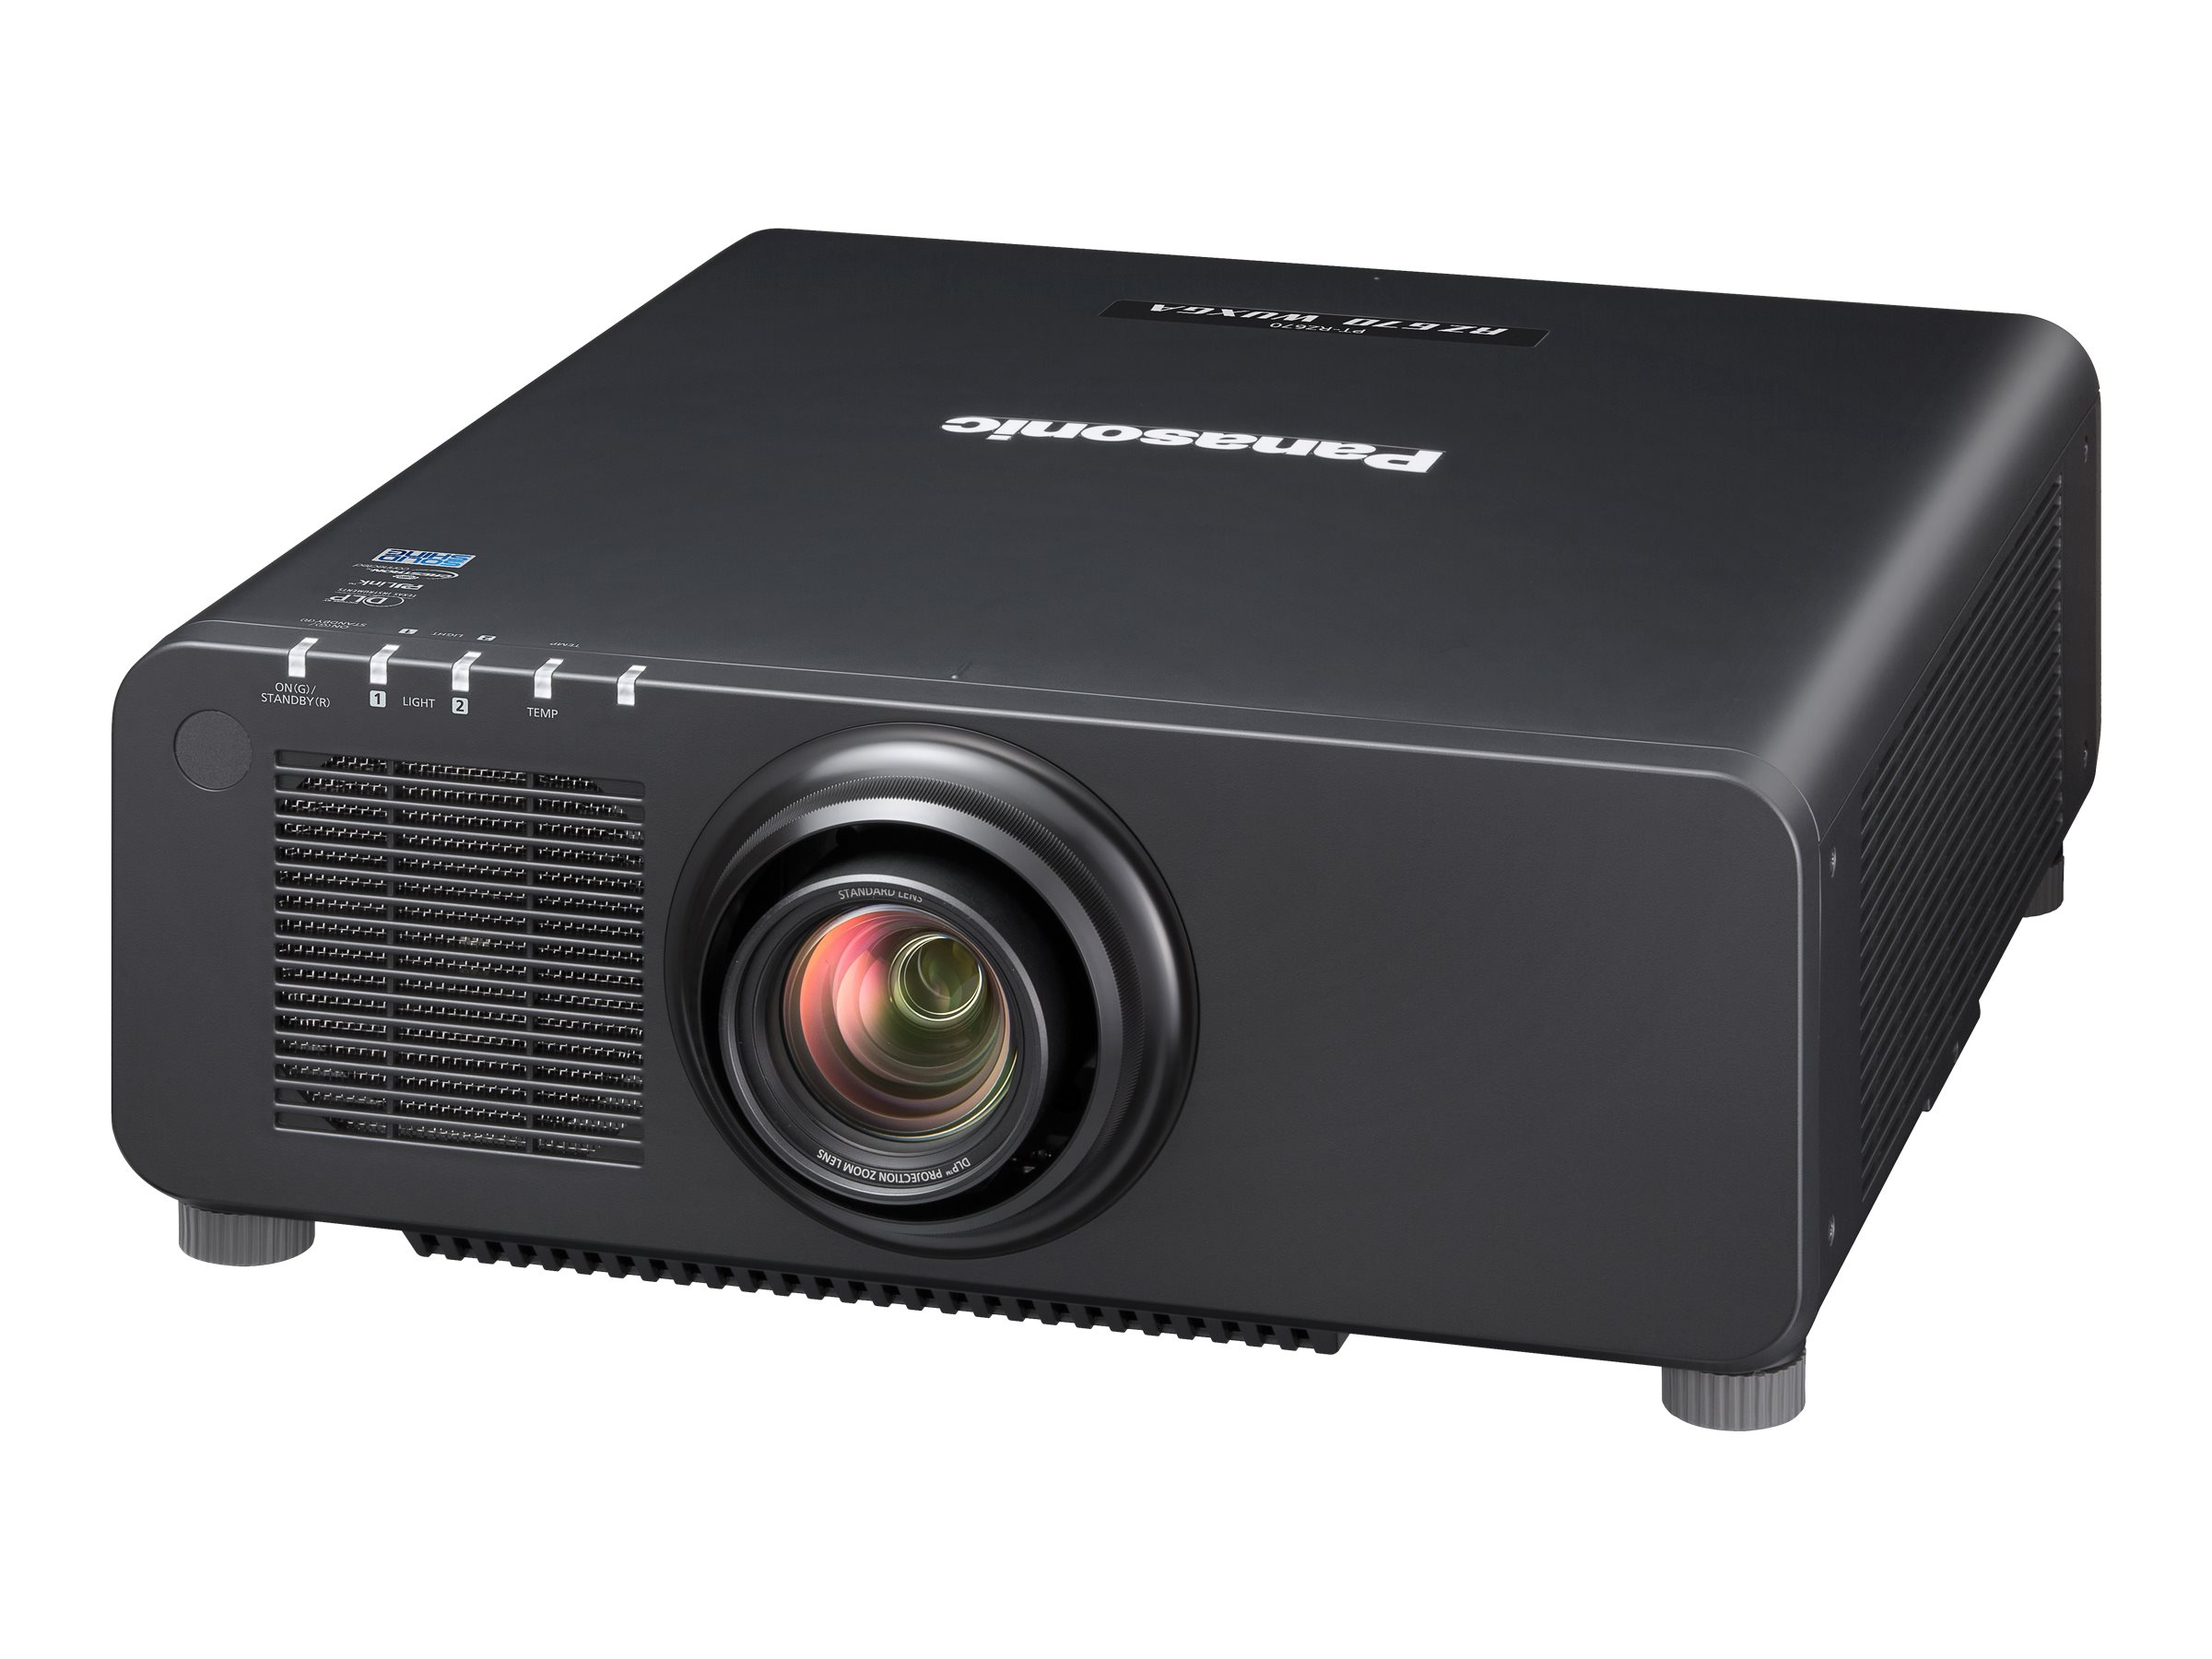 Panasonic PT-RZ67LBU Fixed Installation Projector - Black, PT-RZ670LBU